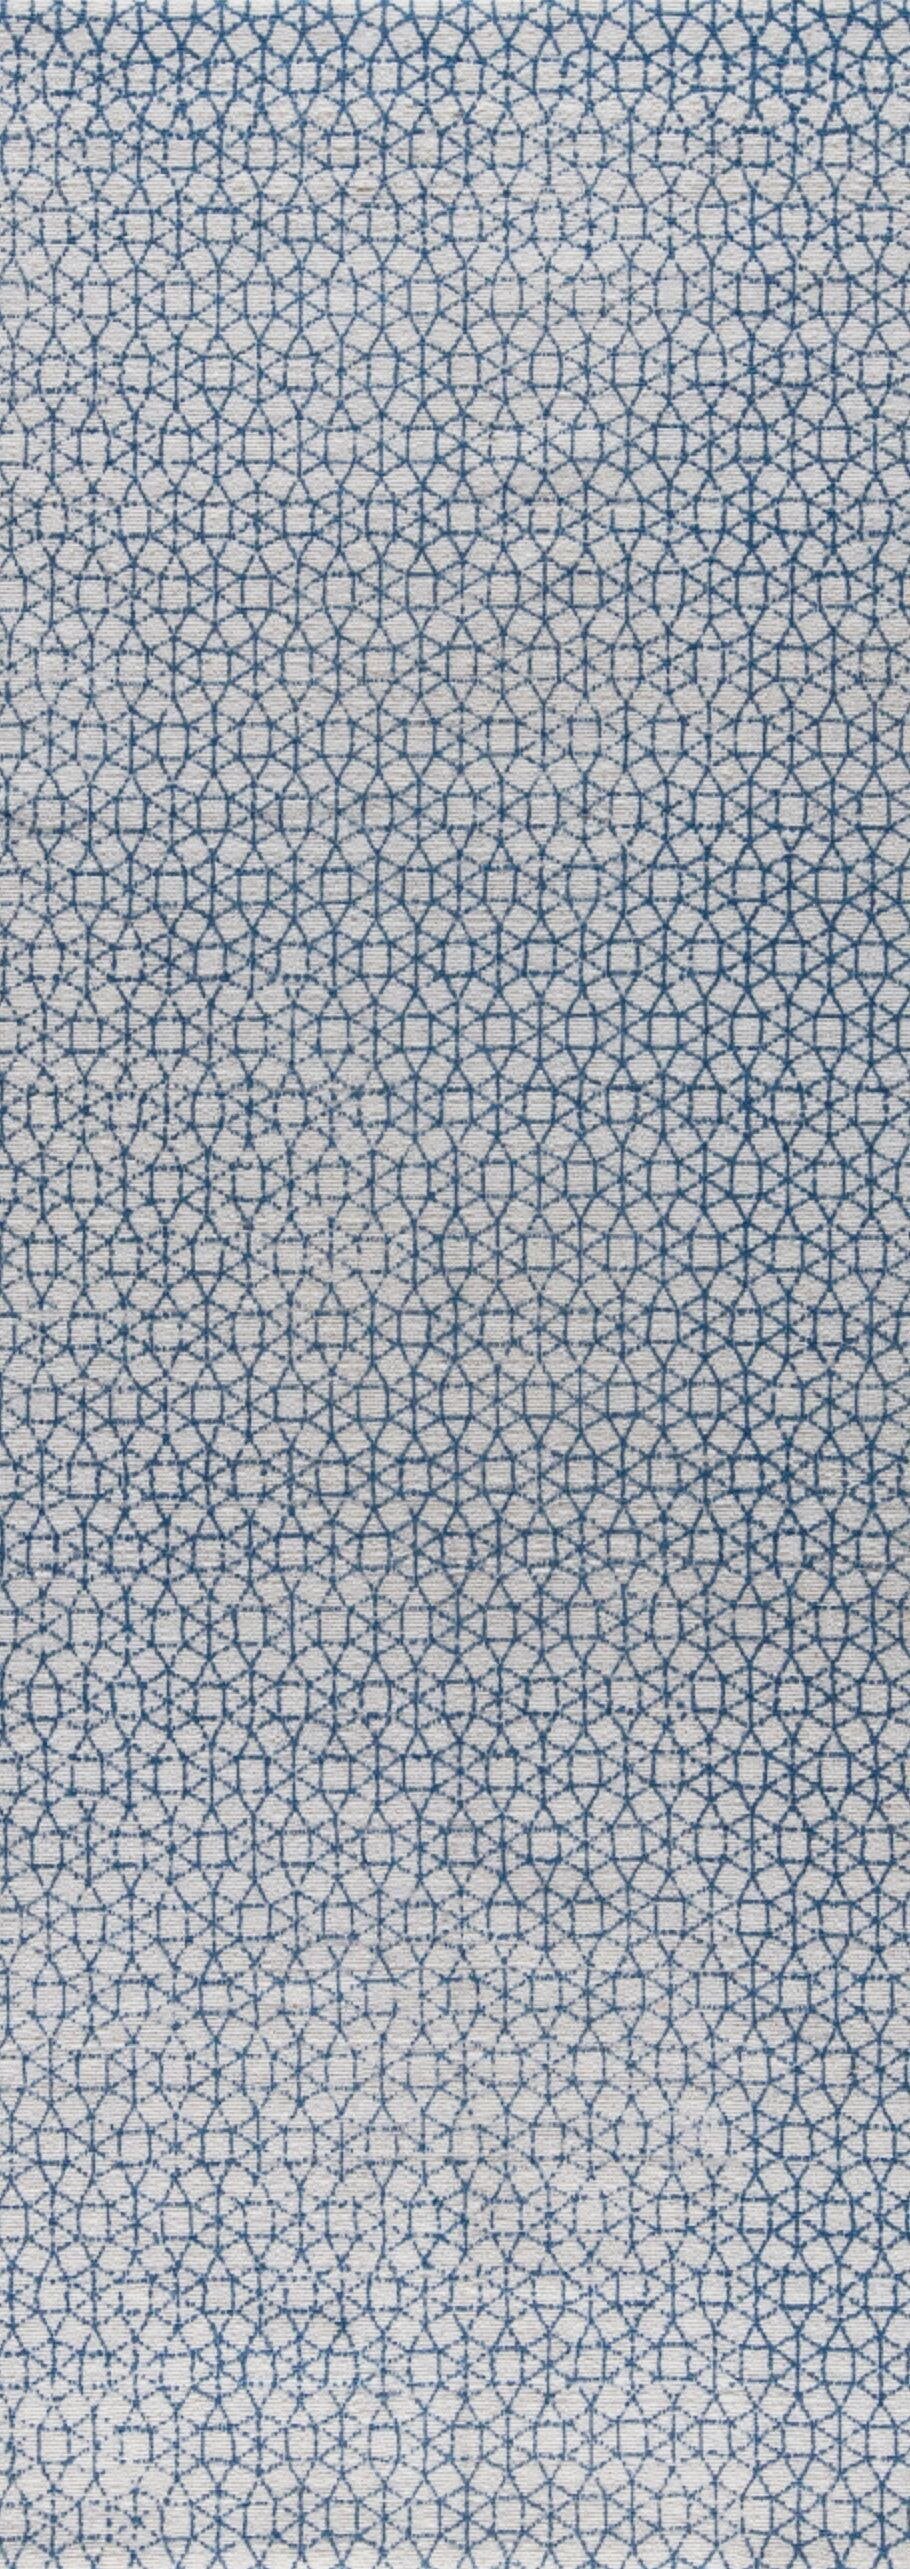 Norman Hand-Woven Blue Area Rug Rug Size: 8' x 10'